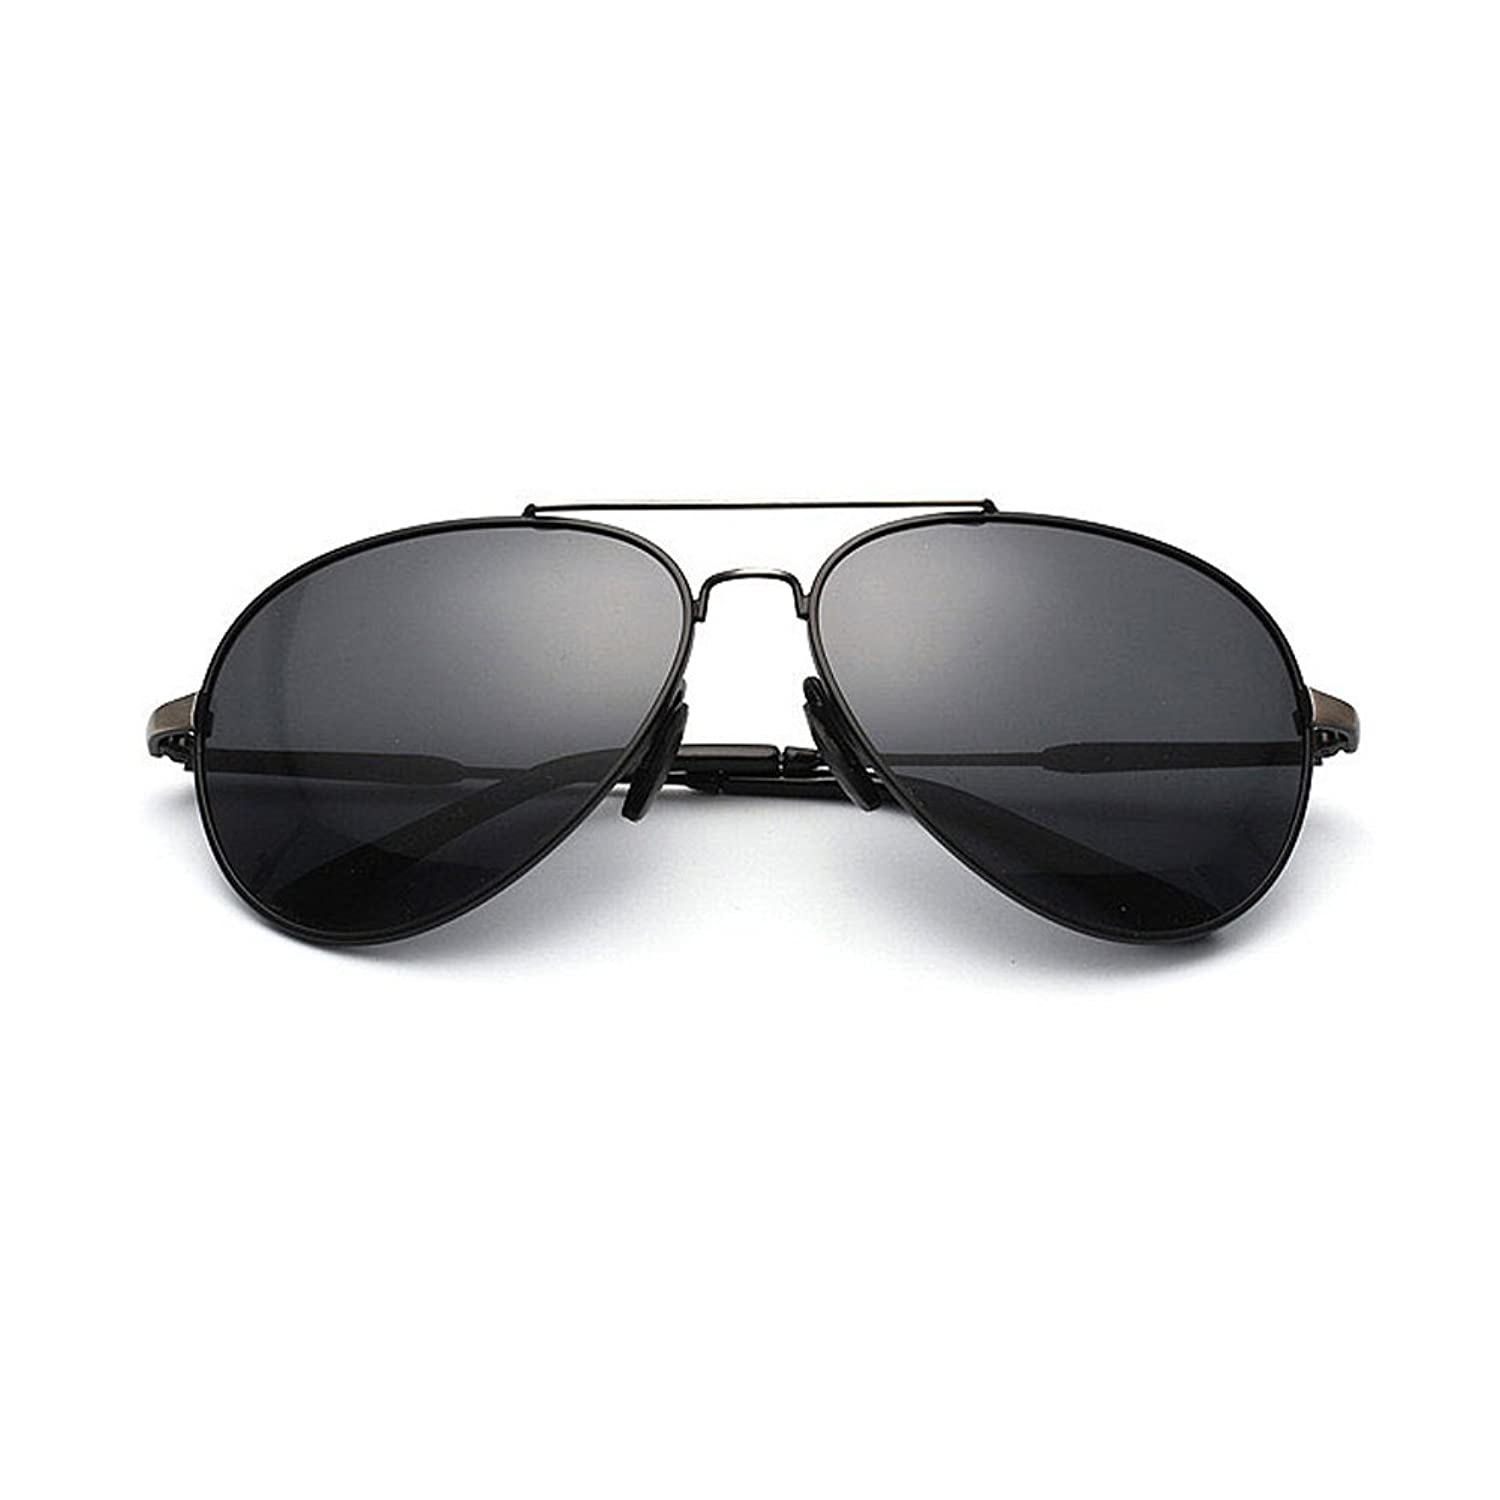 762e7f55b4 low-cost Men s fashion ray ban polarized sunglasses UV protection color  lens bicycle summer eyewear